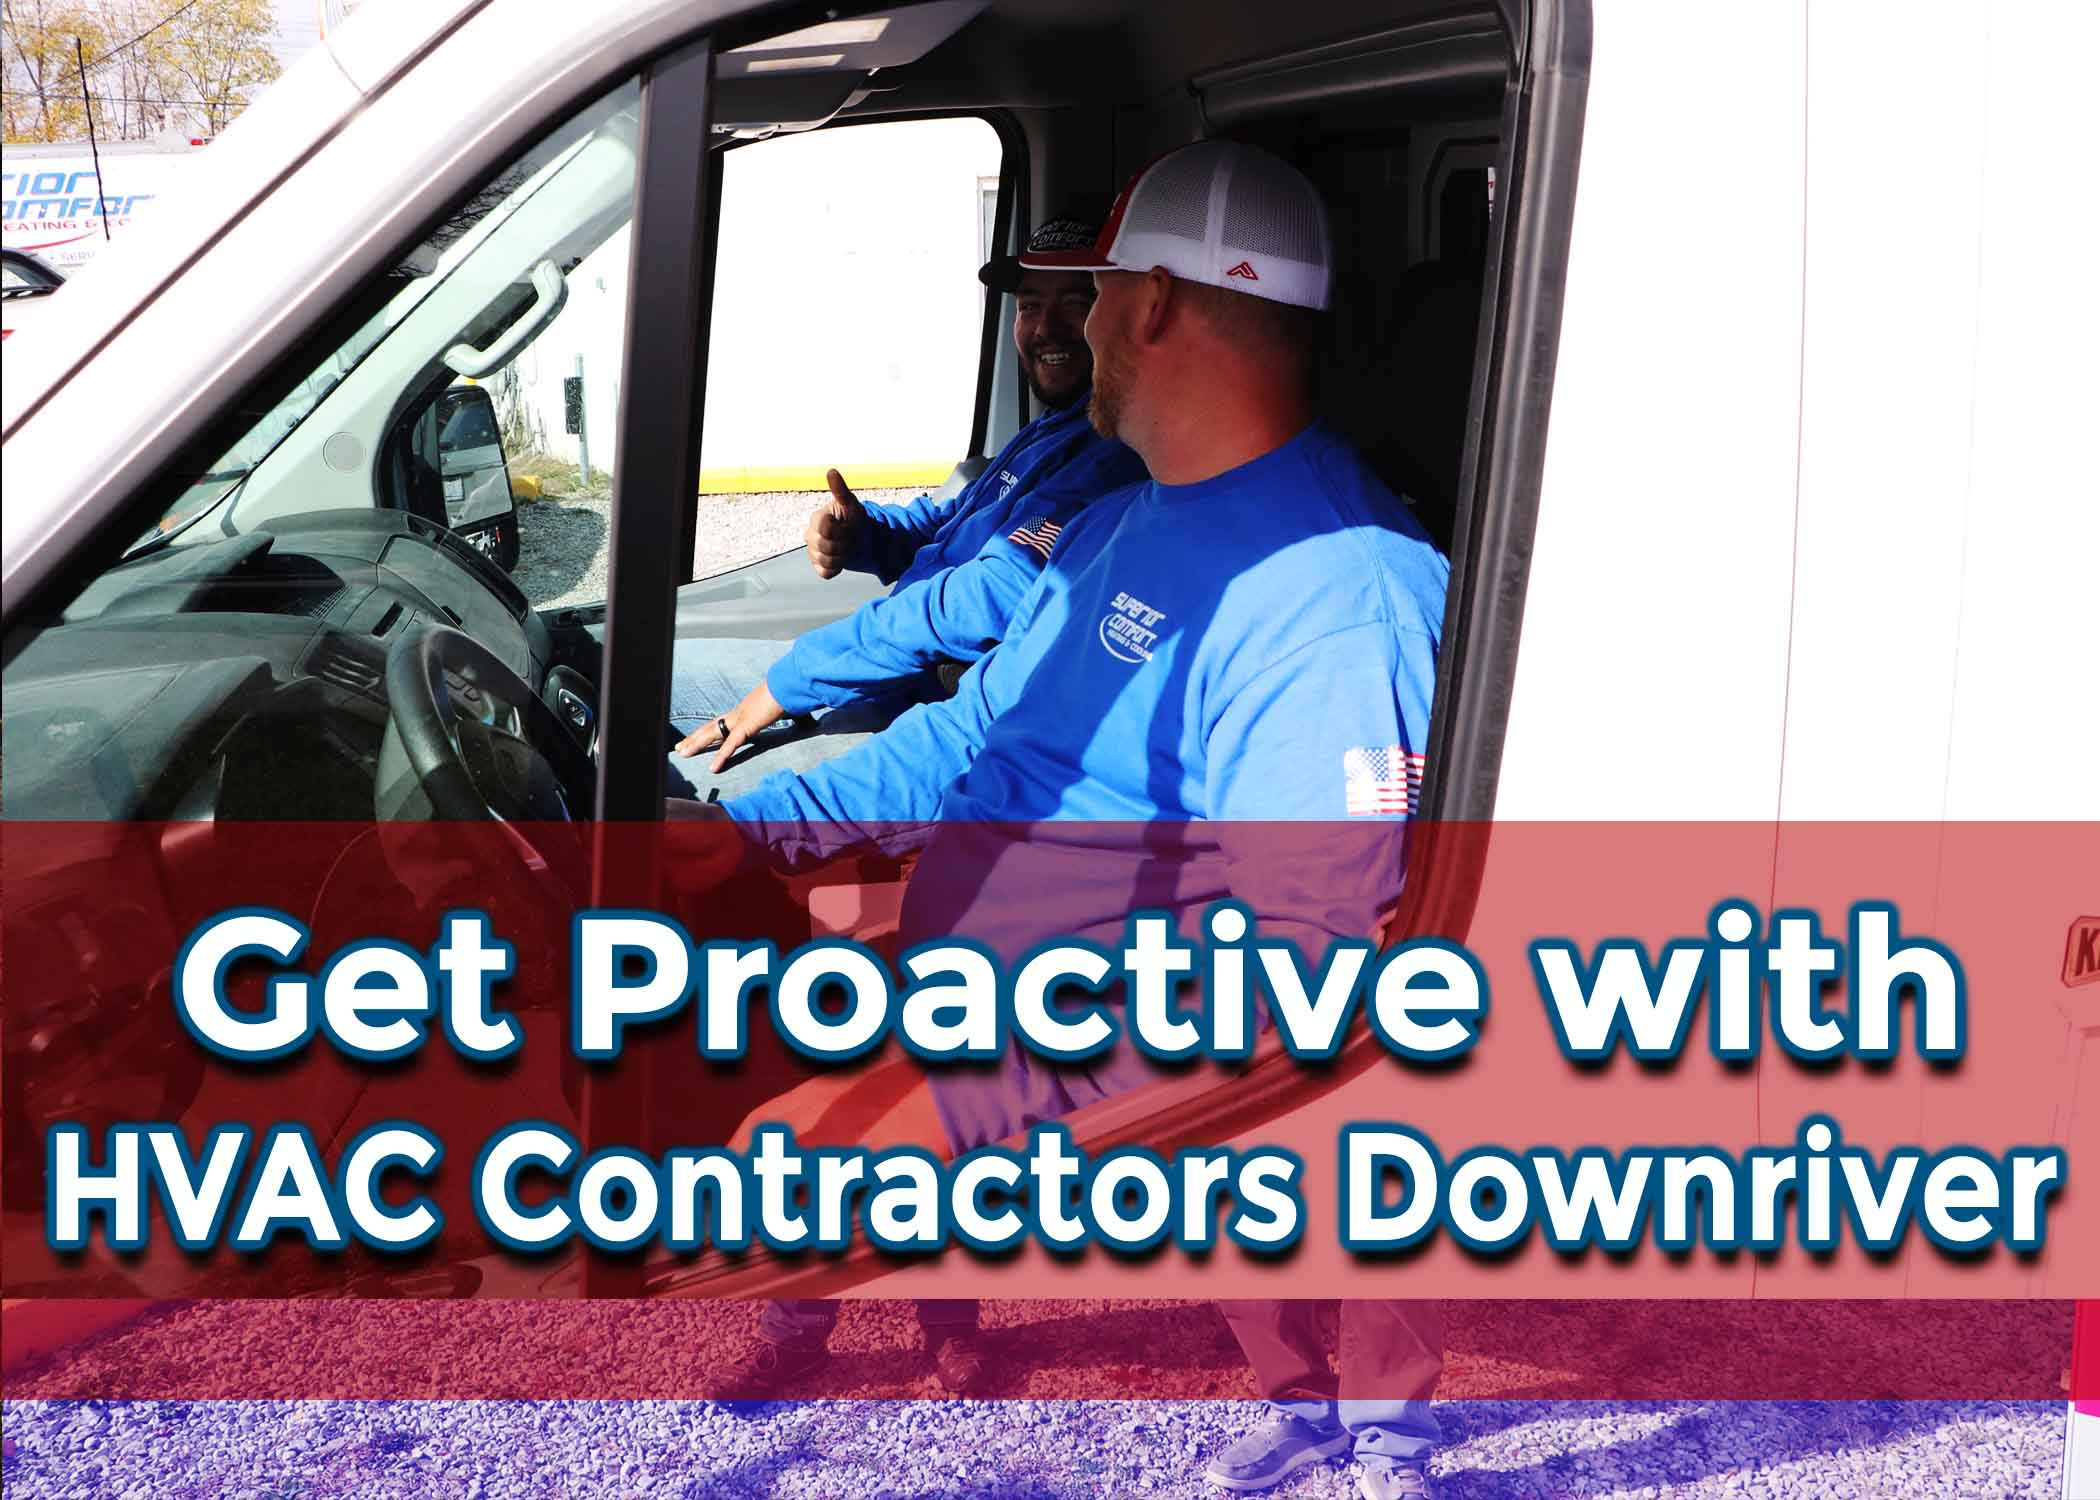 How to Get Proactive with Downriver HVAC Contractors in Winter Season